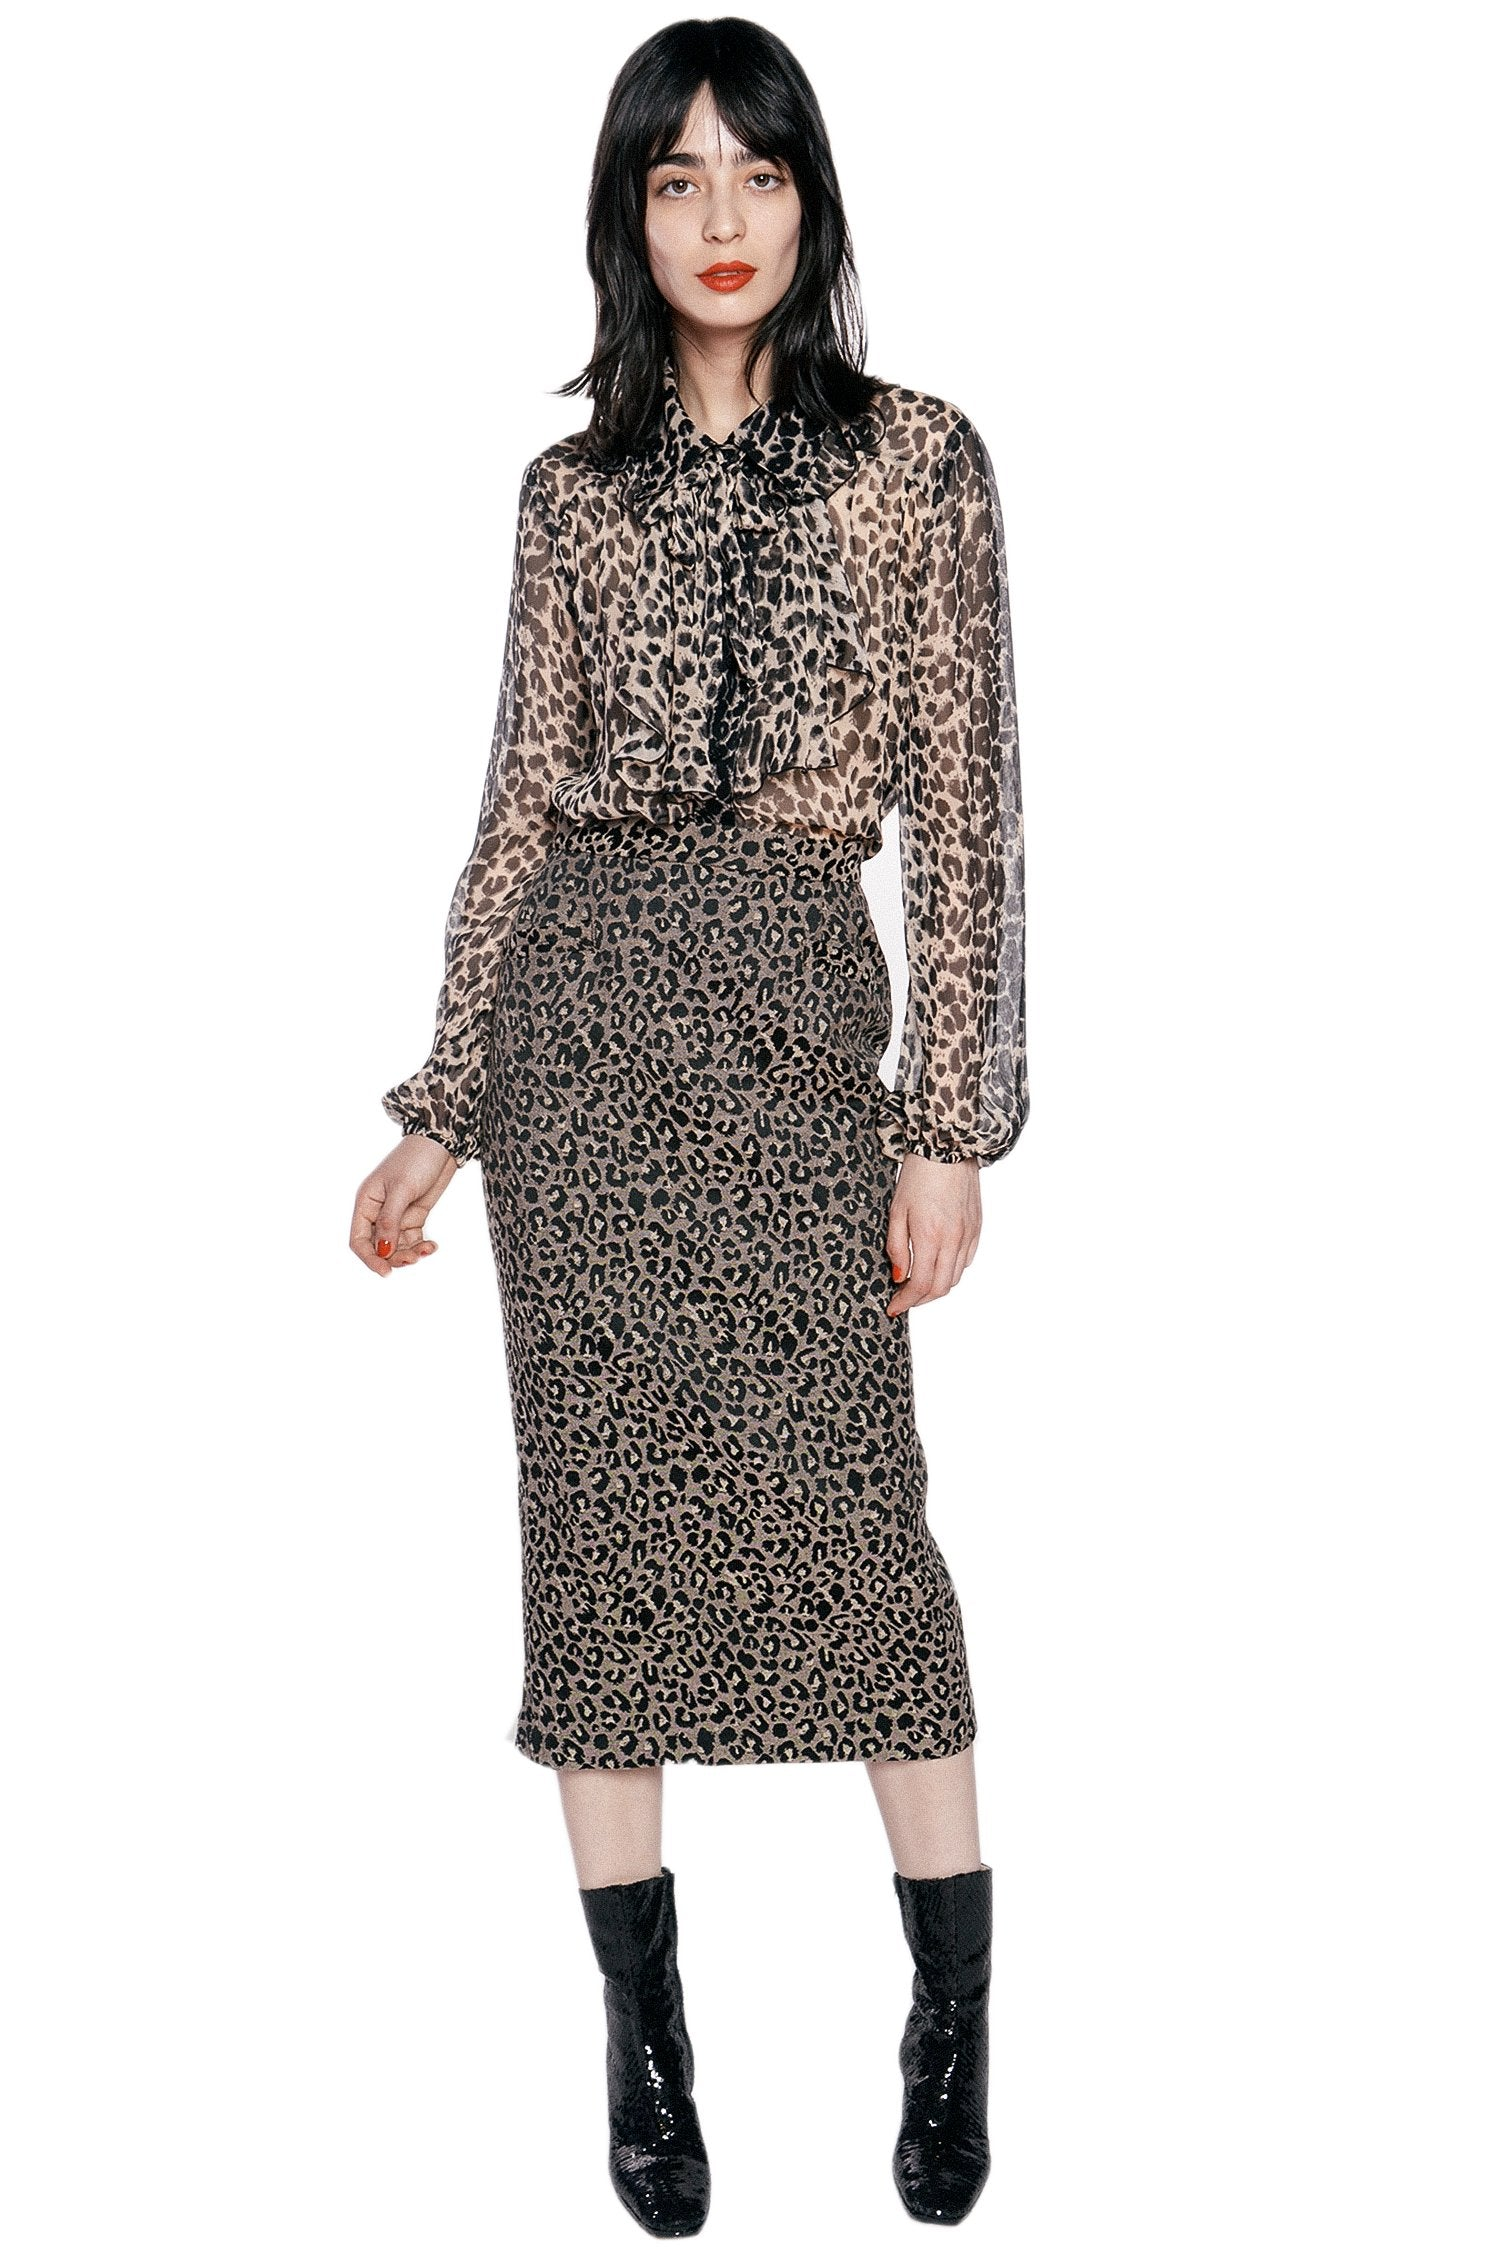 Leopard Crinkle Chiffon Top - Anna Sui